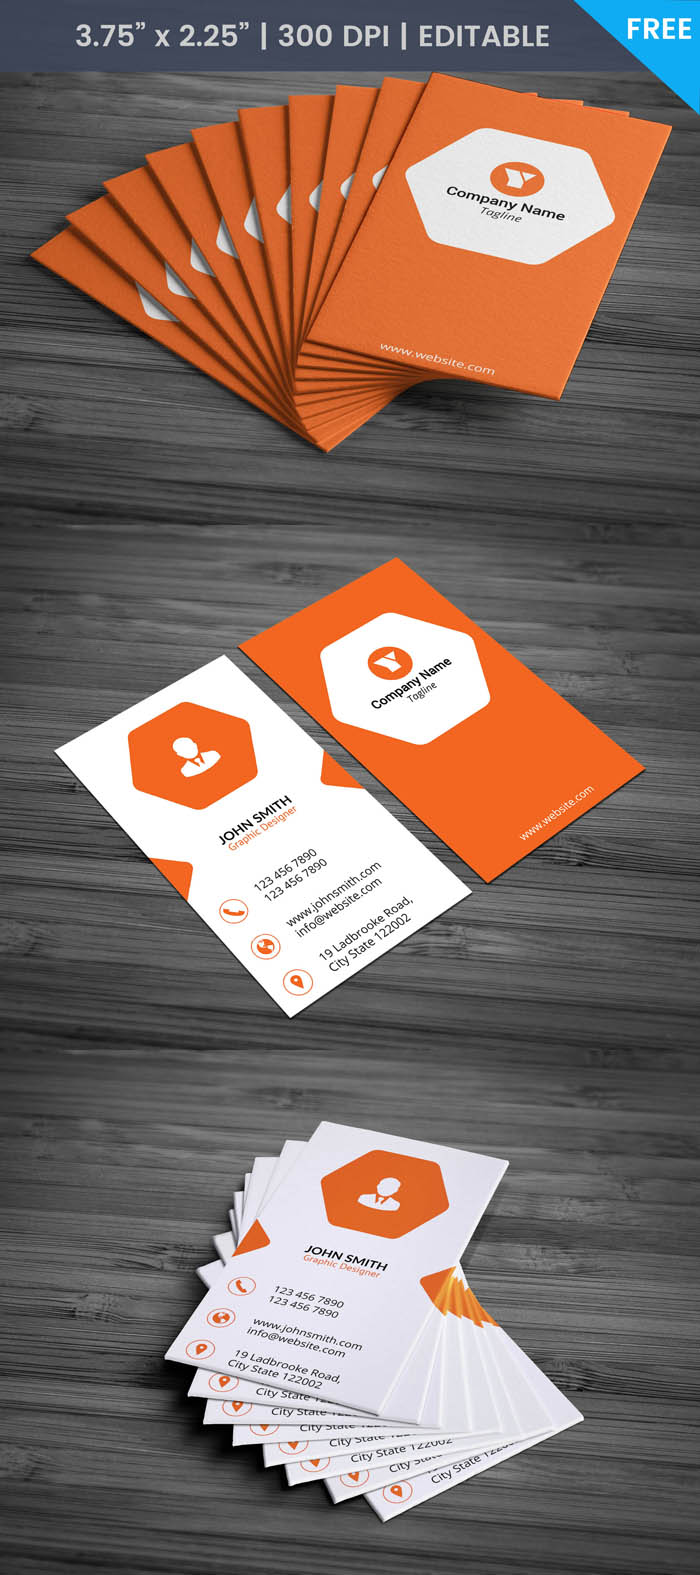 Women Legal Advisor Business Card - Full Preview